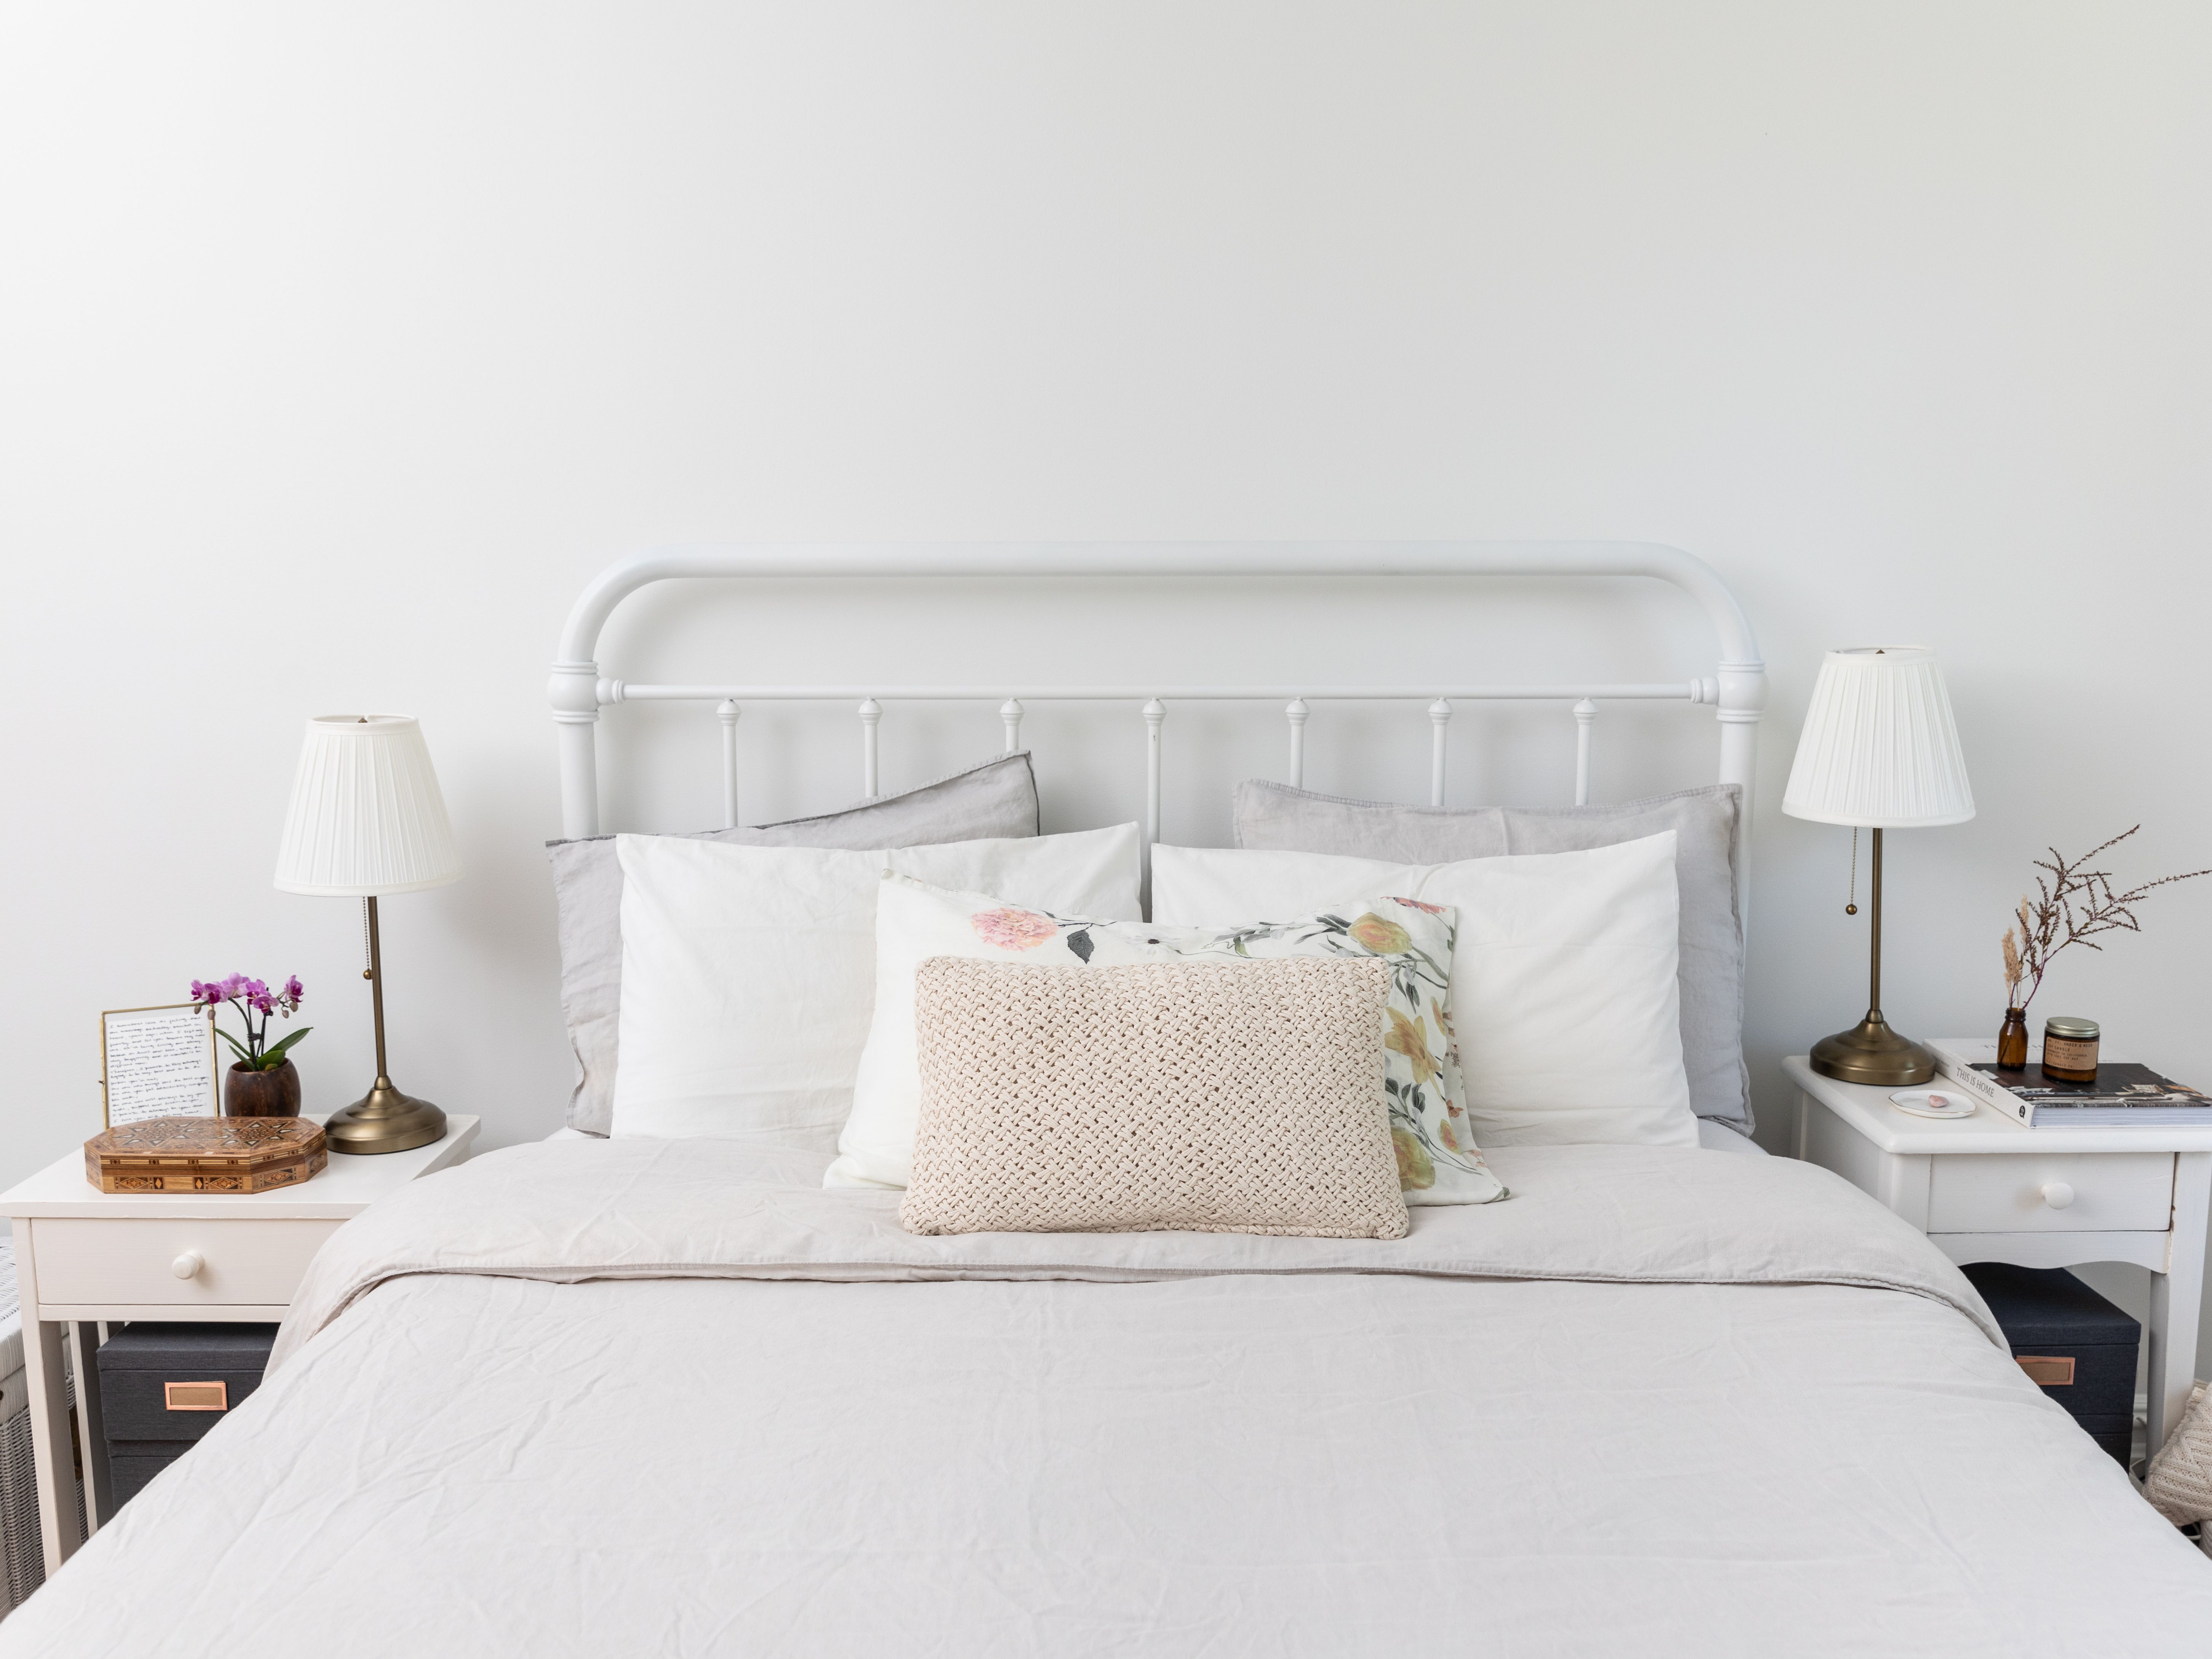 8 Bed Making Mistakes And How To Fix Them